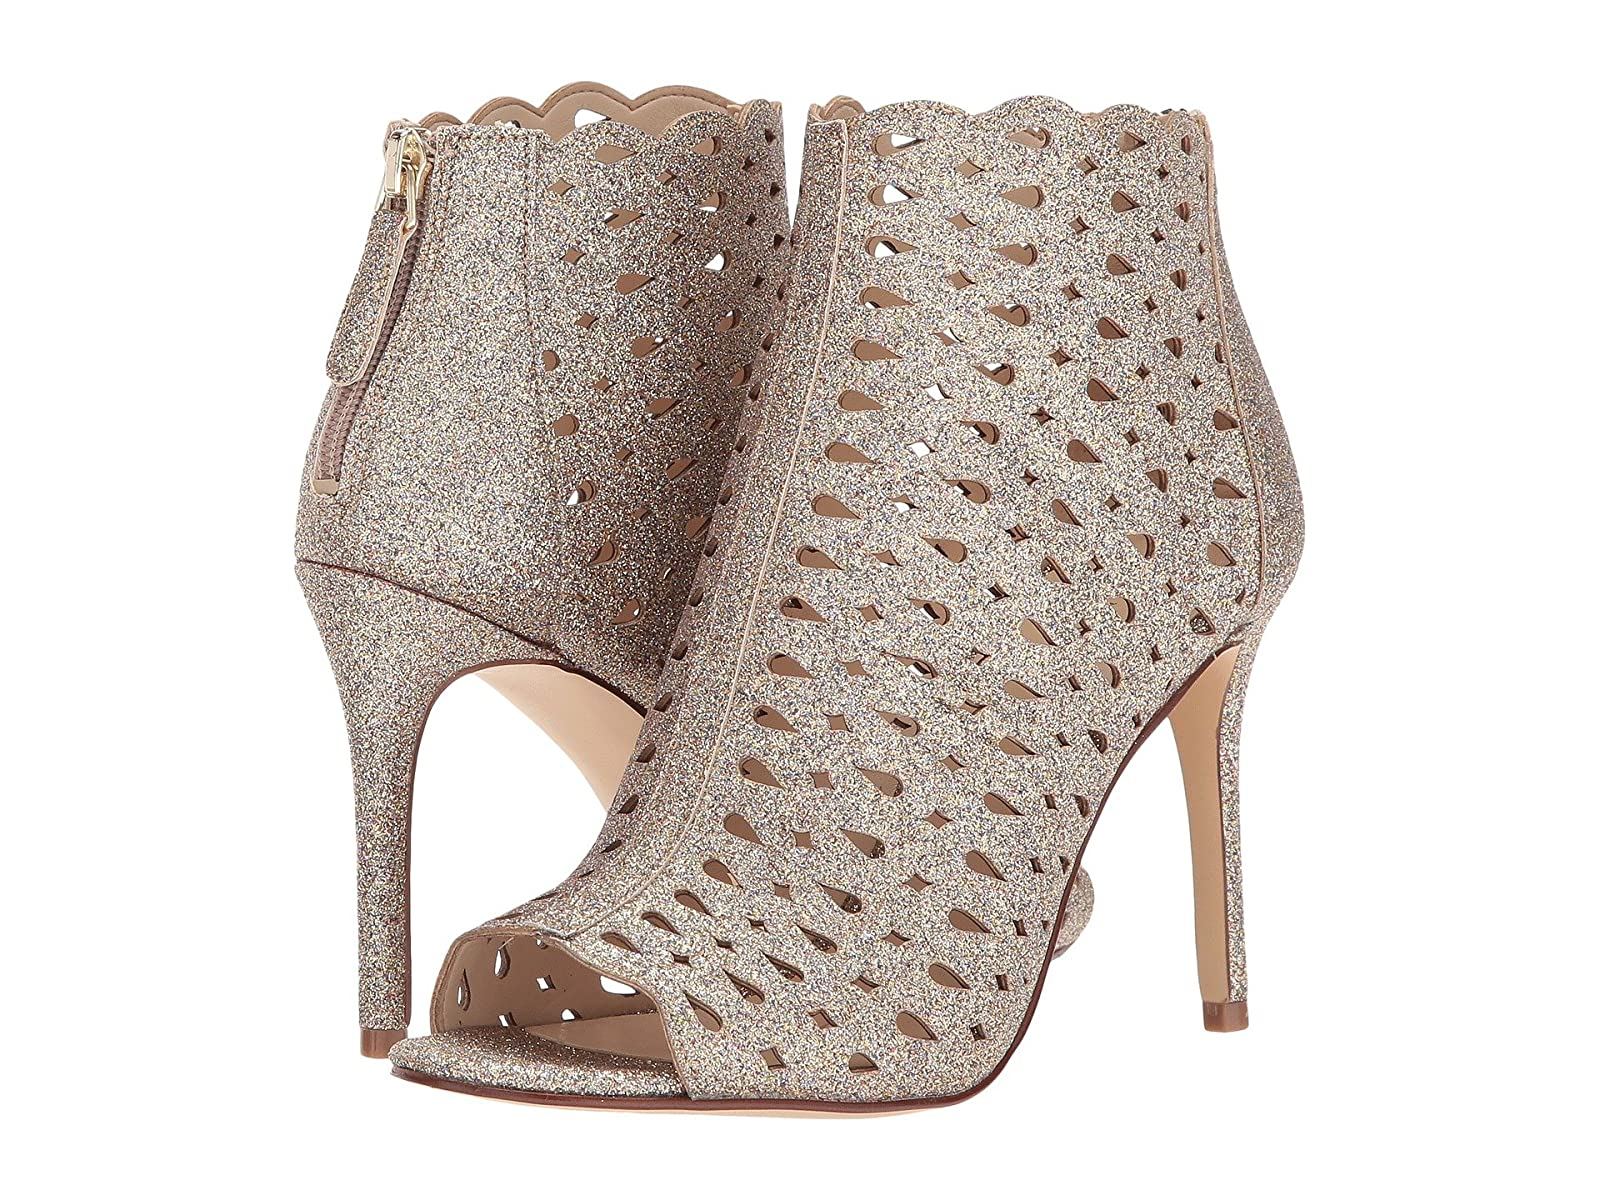 Nine West MubinaCheap and distinctive eye-catching shoes